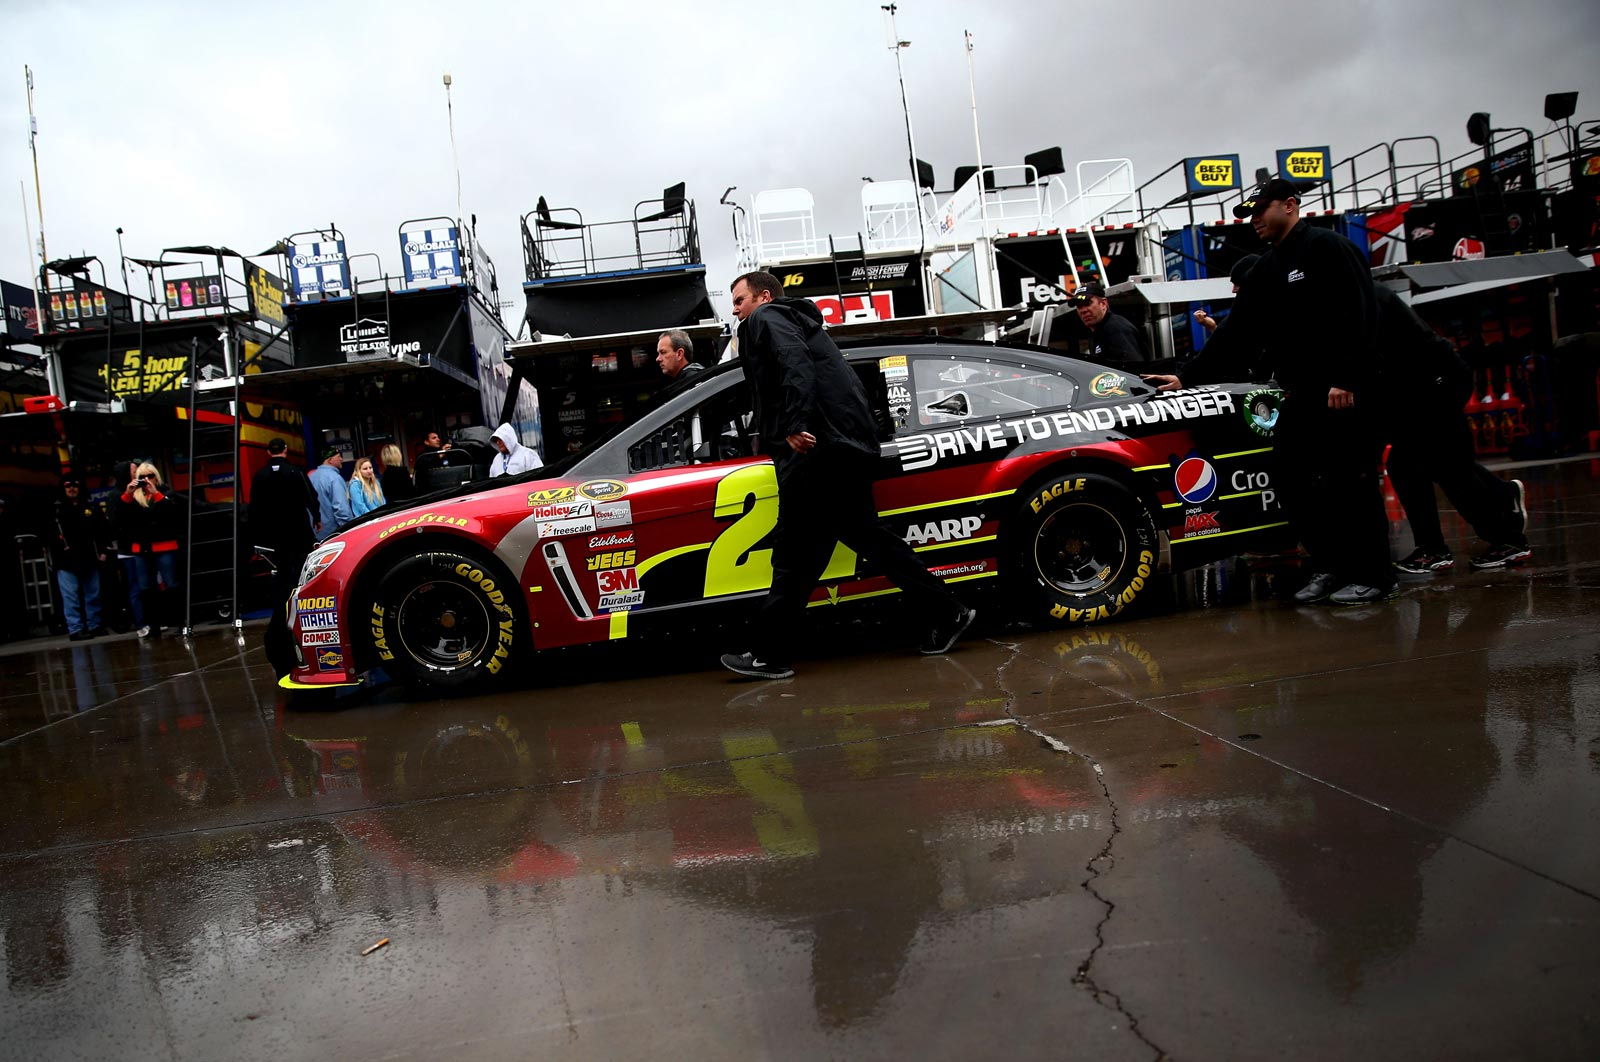 Jeff-Gordon-Las-Vegas-NASCAR-rain-2013-Friday